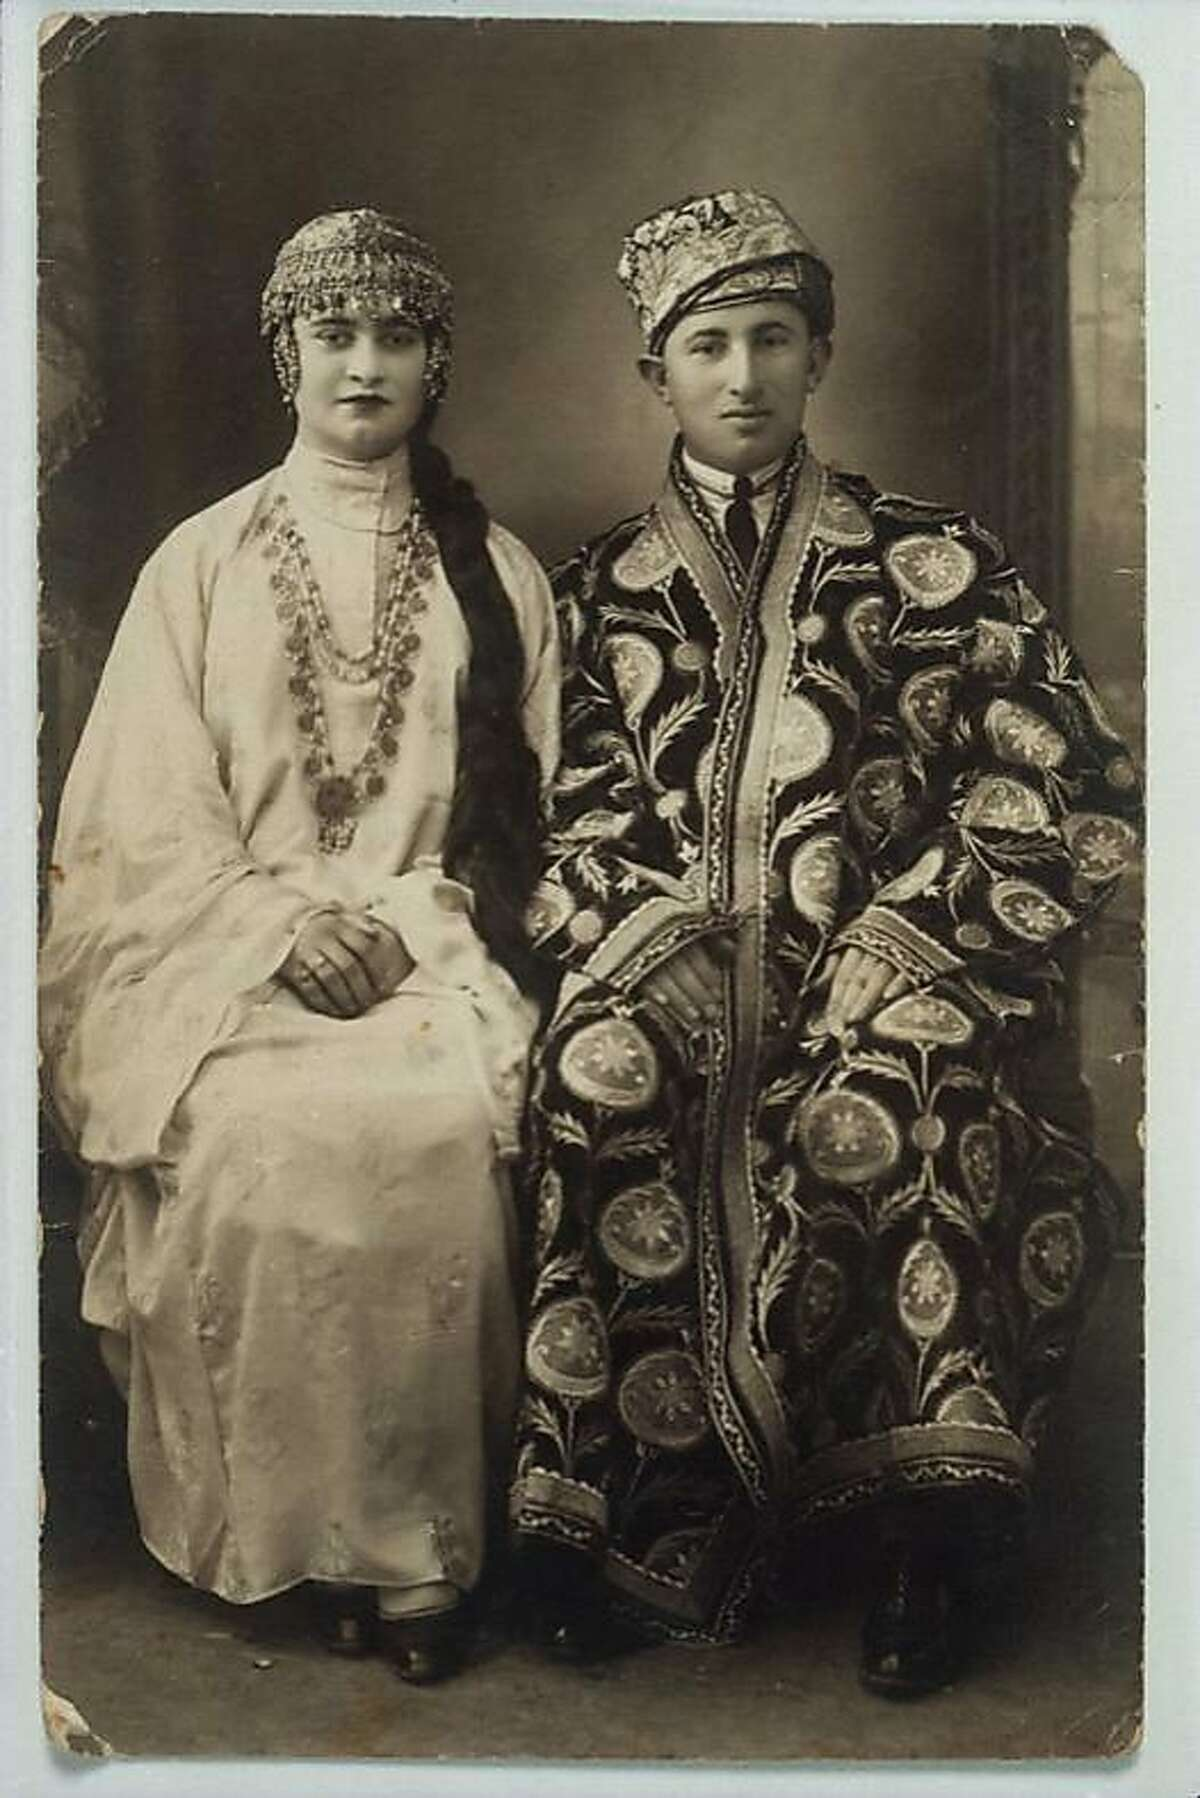 David and Rina Davidoff, after their betrothal dressed in Bukharan traditional festive attire. Jerusalem, 1927. Photographic Archive of The Isidore and Anne Falk Information Center for the Jewish Art and Life, The Israel Museum, Jerusalem. Courtesy Dan Meiry, Haifa. Veiled Meanings: Fashioning Jewish Dress, from the Collection of The Israel Museum, Jerusalem on view August 30, 2018�January 6, 2019 at The Contemporary Jewish Museum, San Francisco.